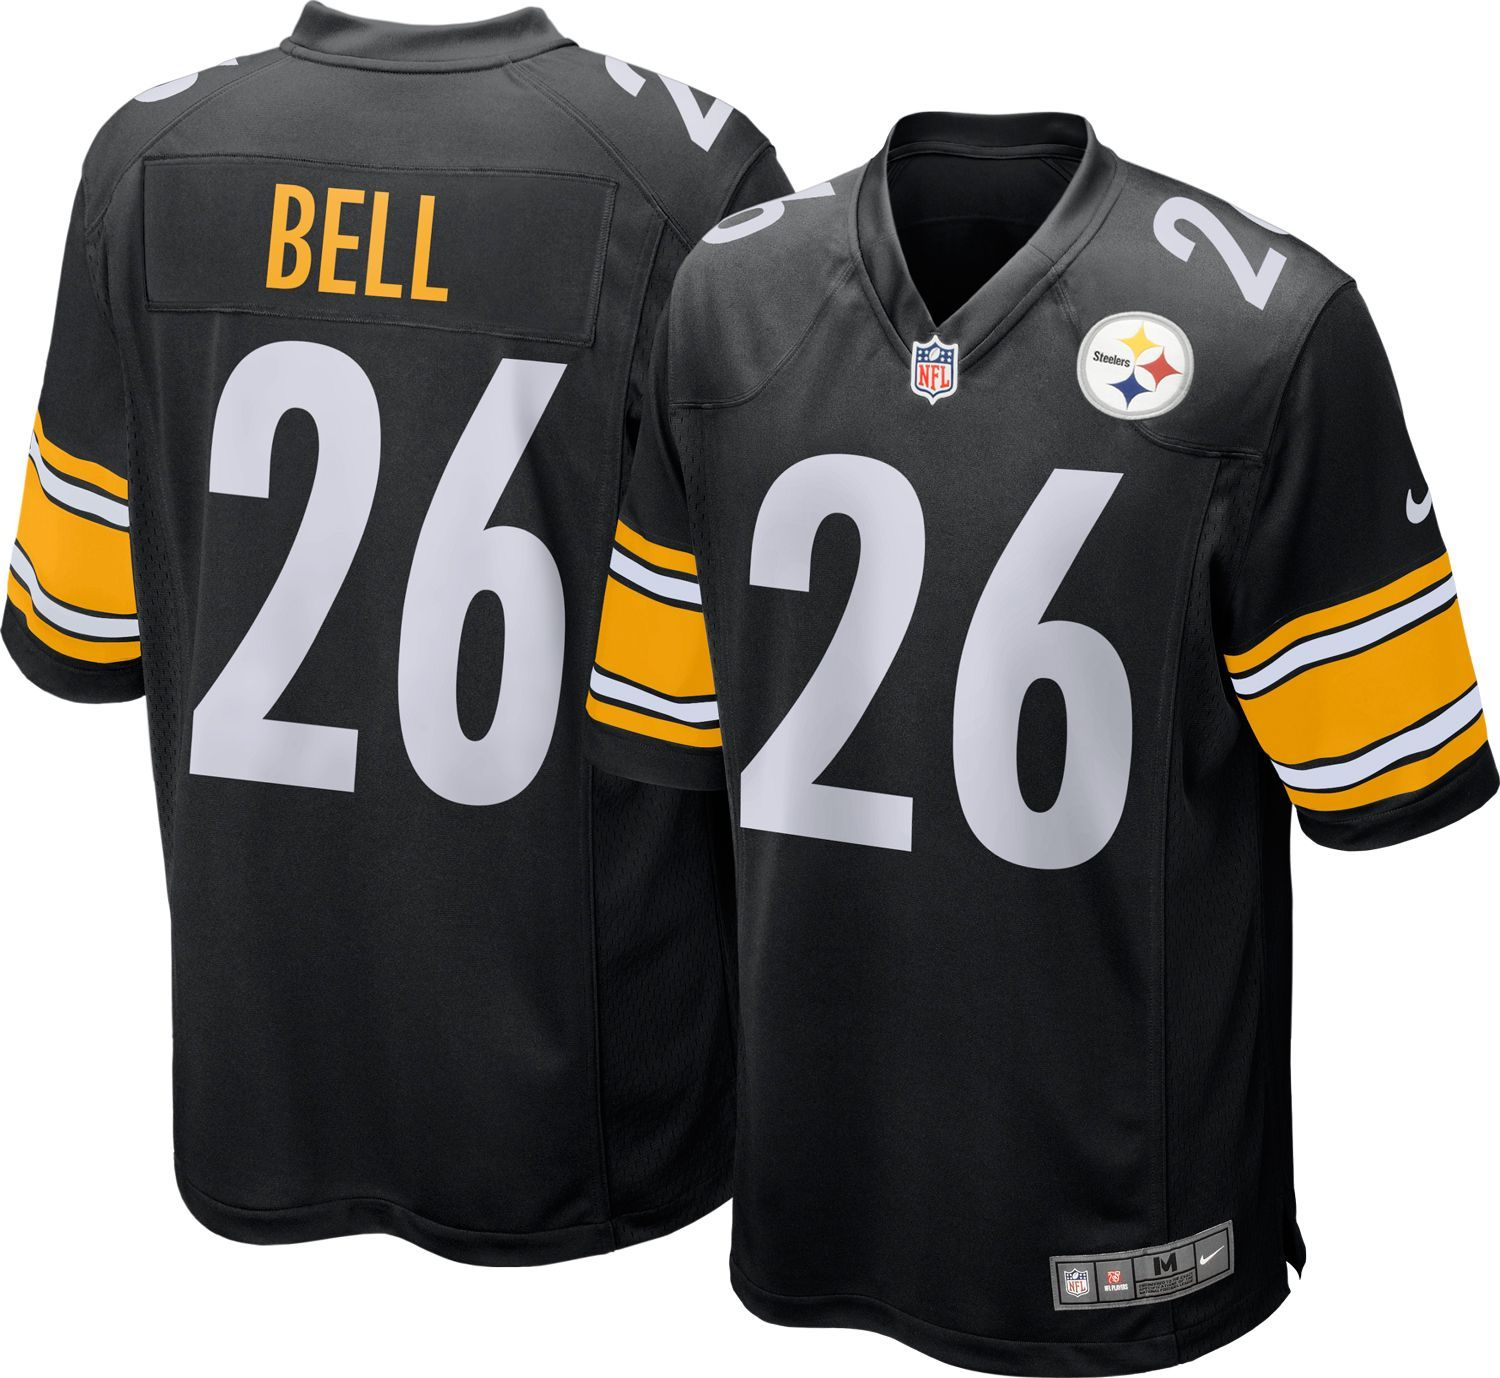 005b3a165cf Nike Youth Home Game Jersey Pittsburgh Le'Veon Bell #26, Kids Unisex, Size:  Medium, Team